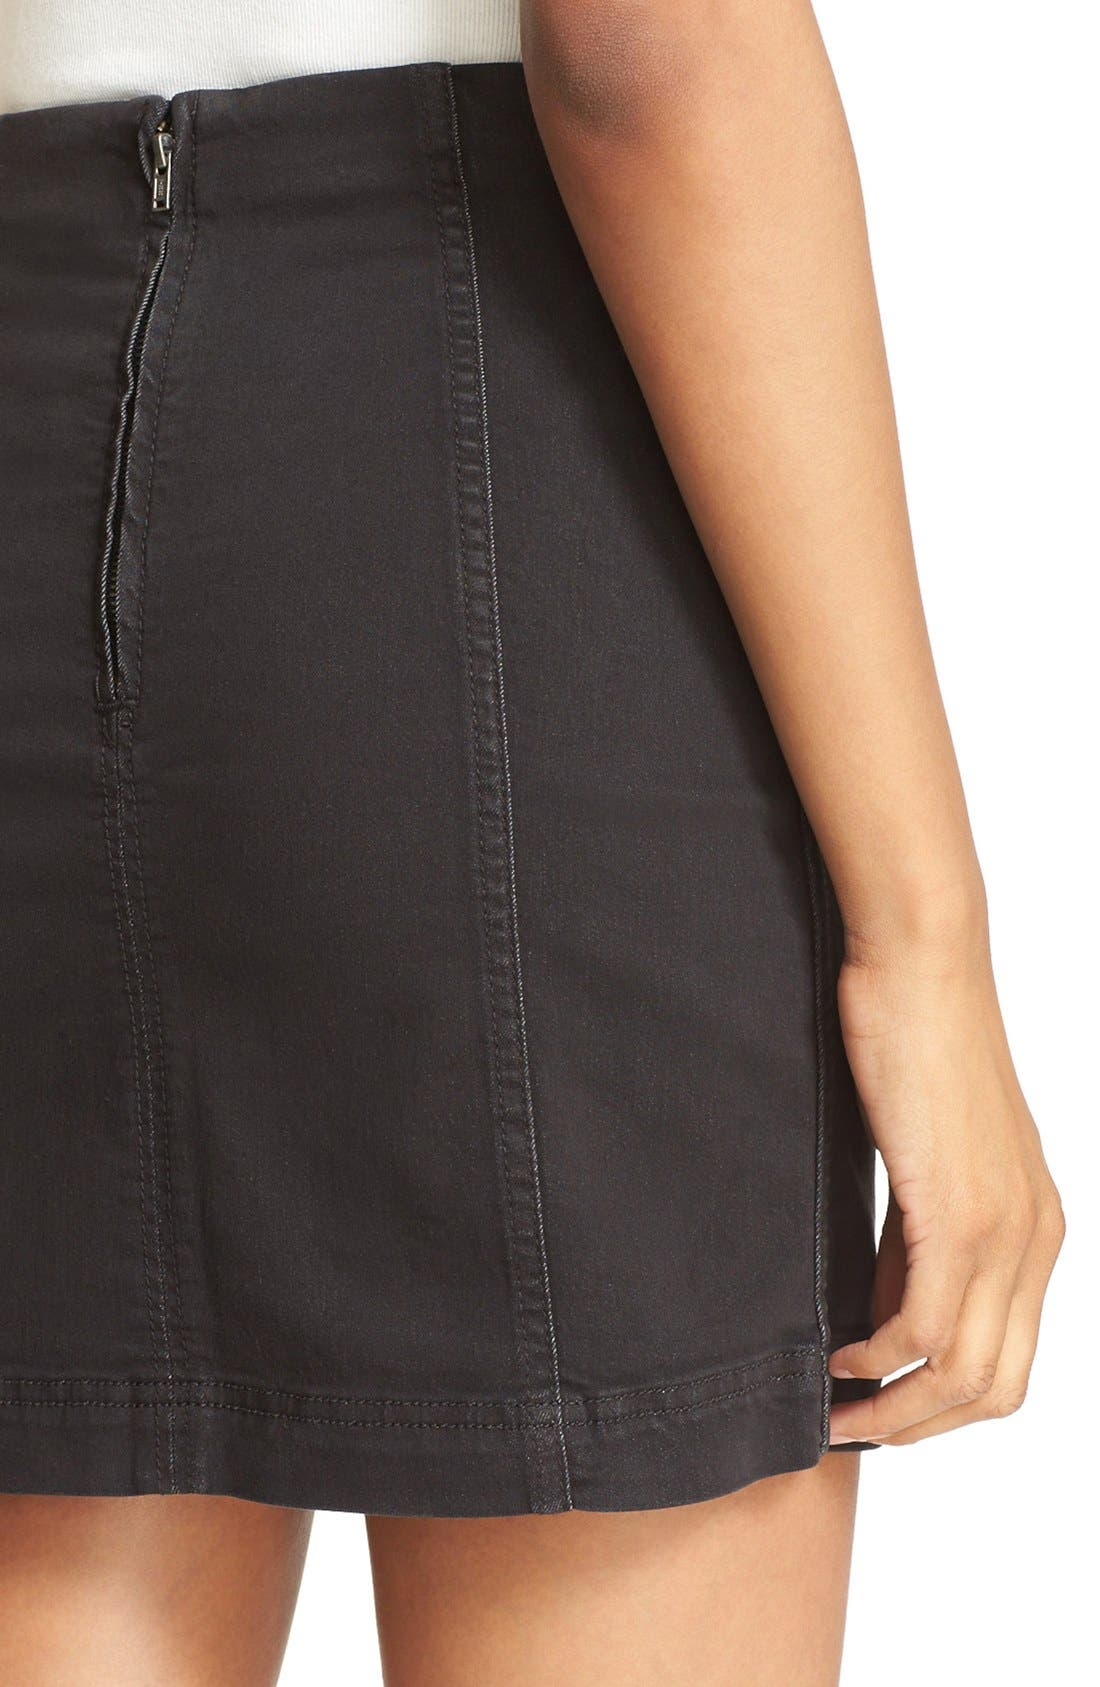 FREE PEOPLE, We the Free by Free People Modern Denim Miniskirt, Alternate thumbnail 4, color, 001